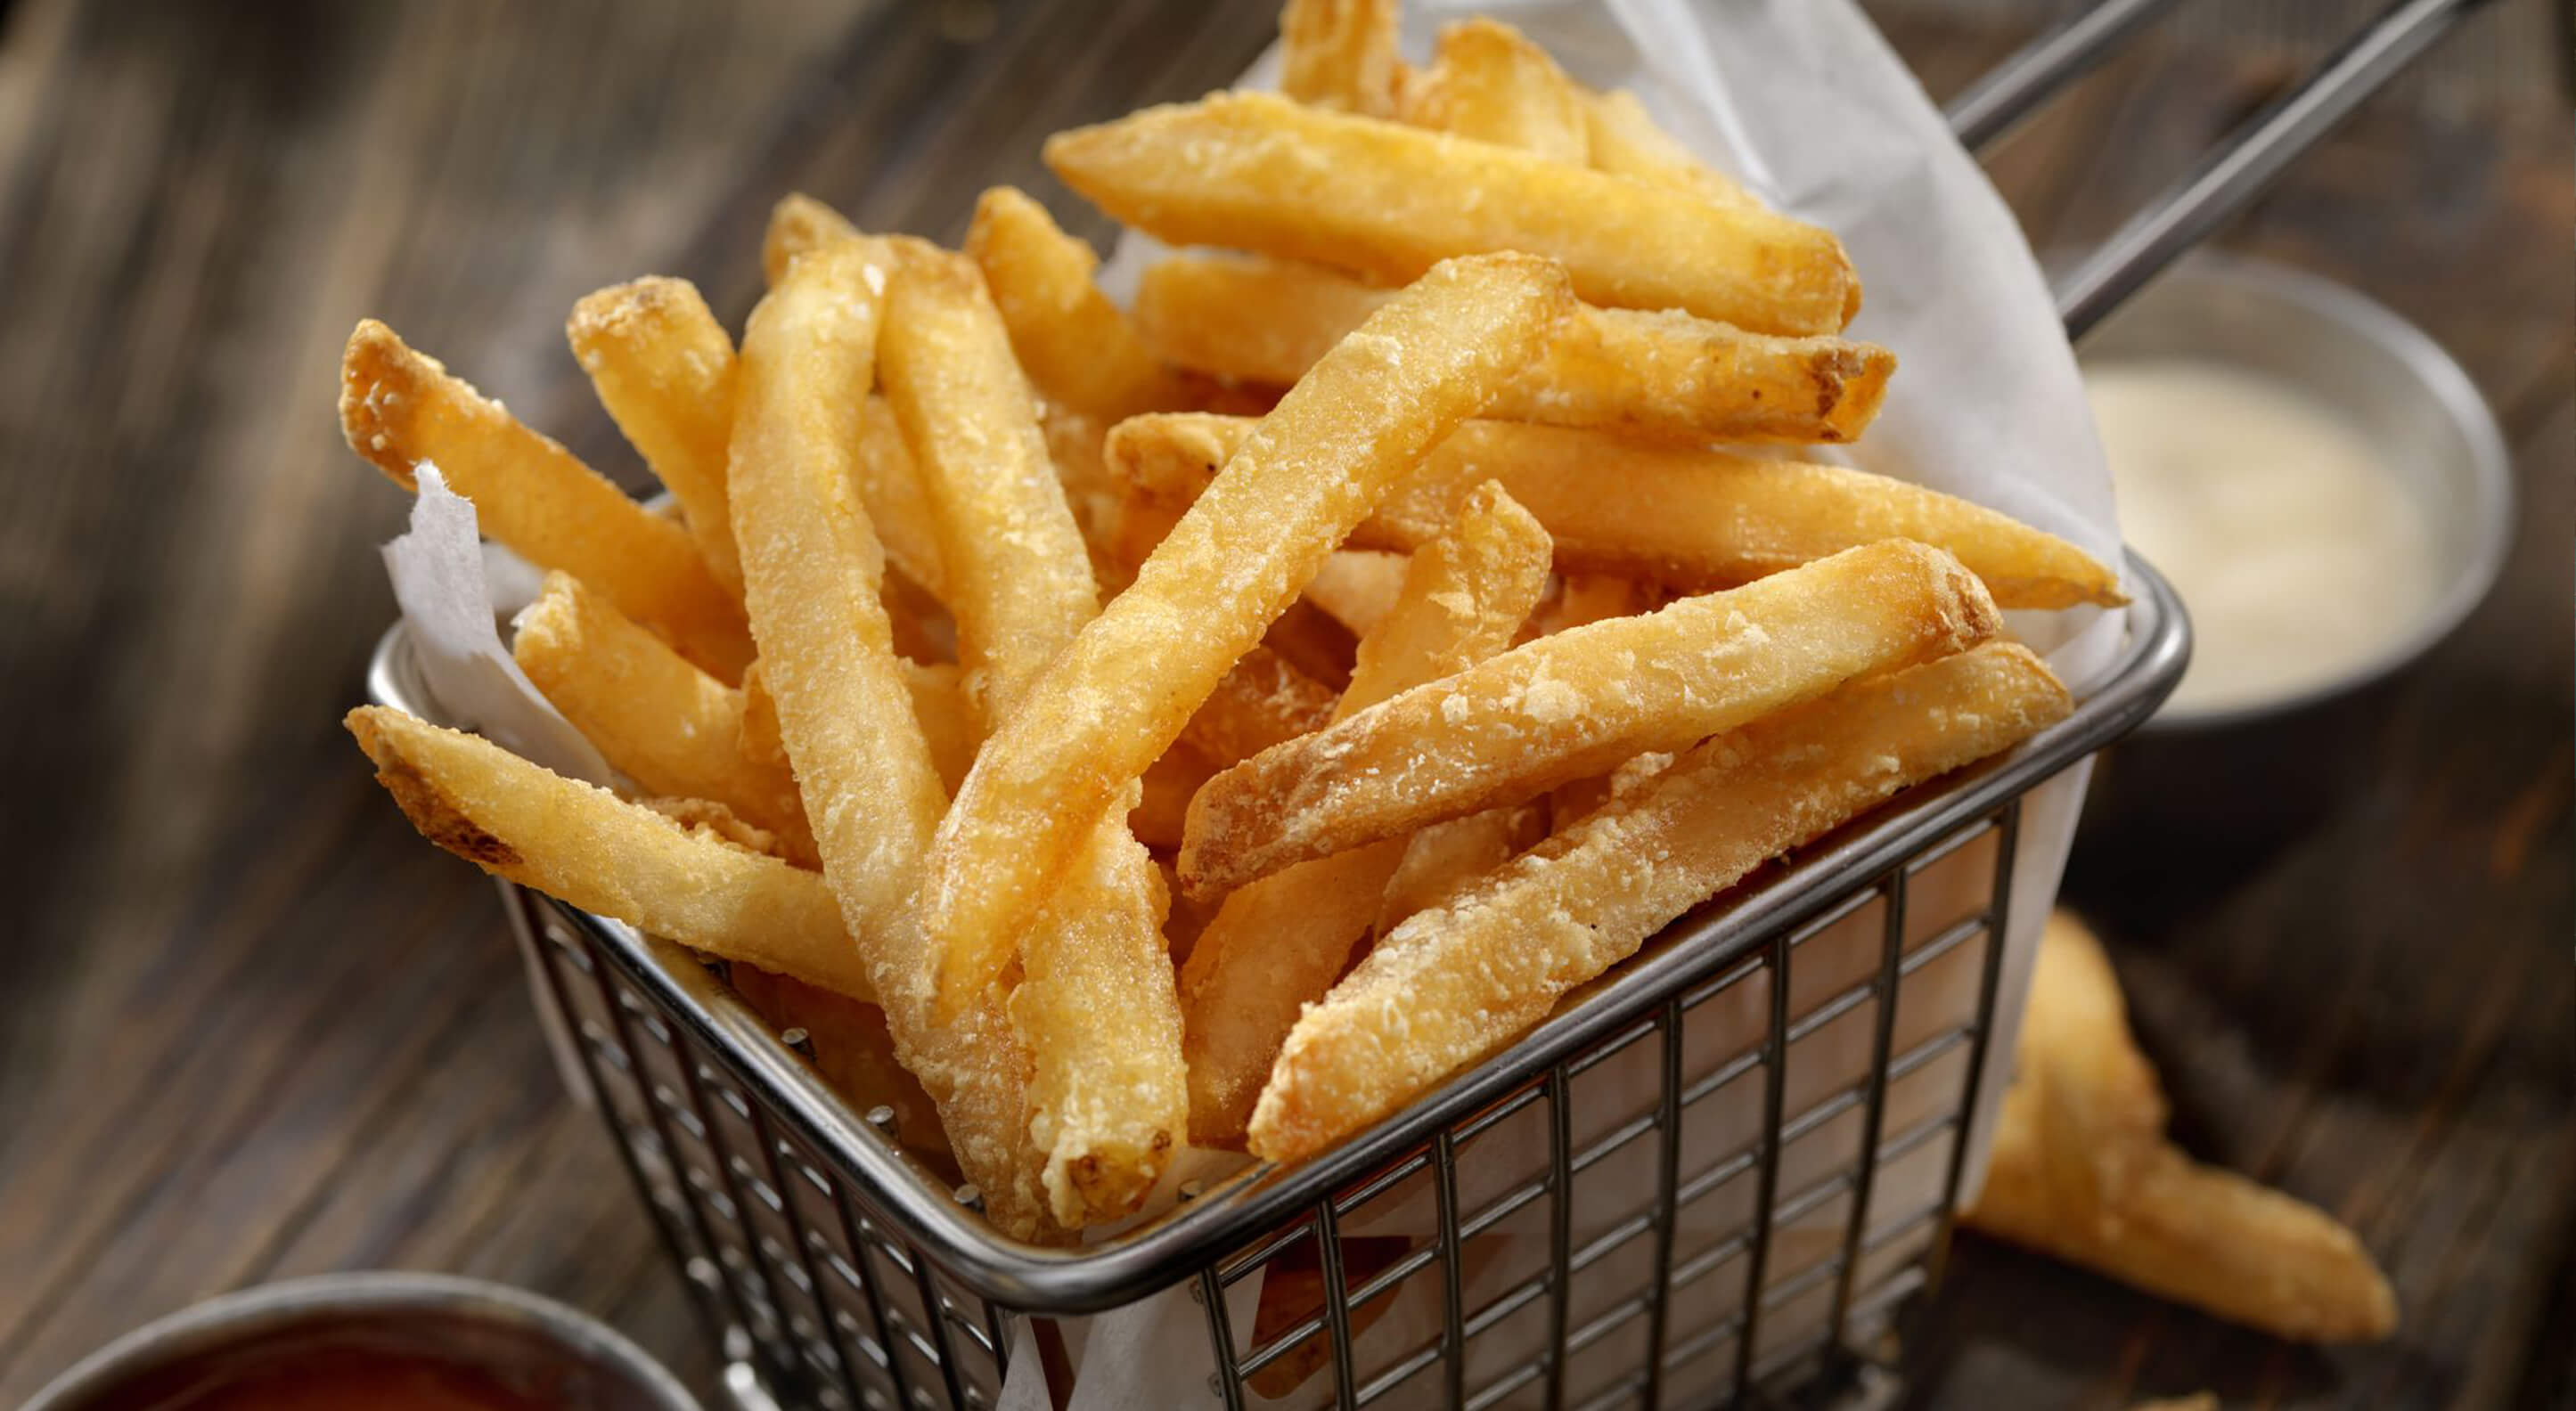 bucket of freshly cooked french fries with ranch dip on the side